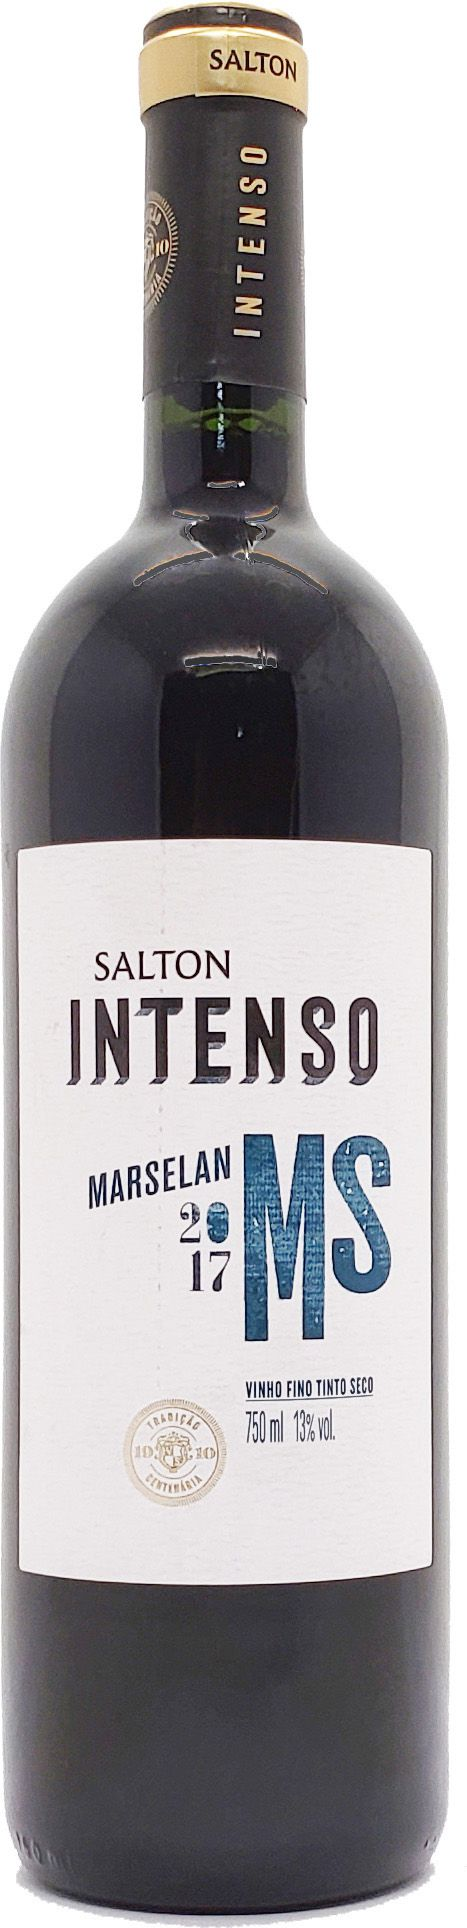 Vinho Tinto Salton Intenso Marselan - 750ml -